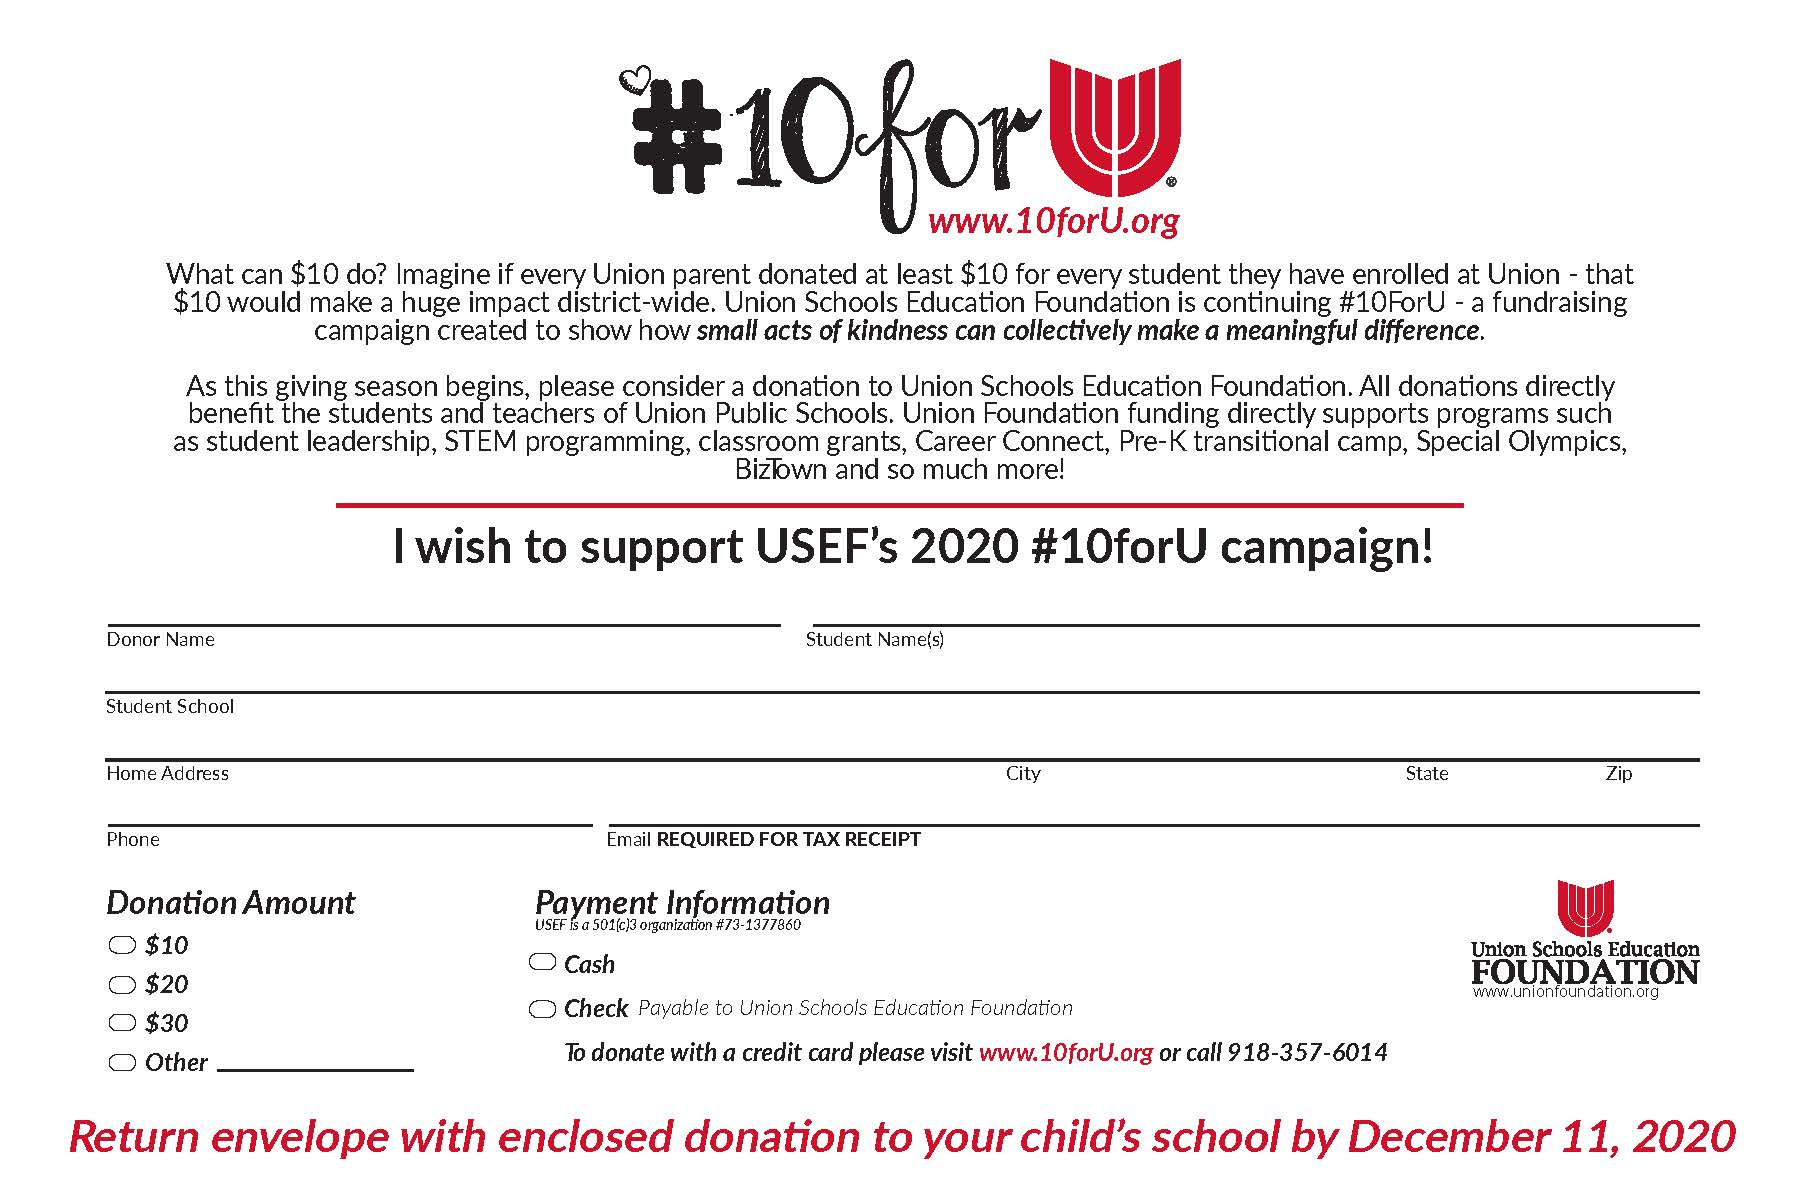 What can $10 do? Imagine if everyUnion Public Schoolsparent donated at least $10 for every student they have enrolled at Union - that $10 would make a huge impact district-wide. This #GivingTuesdayon December 1, Union Schools Education Foundation is launching our 3rd annual #10ForU drive - a fundraising campaign created to show how small acts of kindness can collectively make a meaningful difference